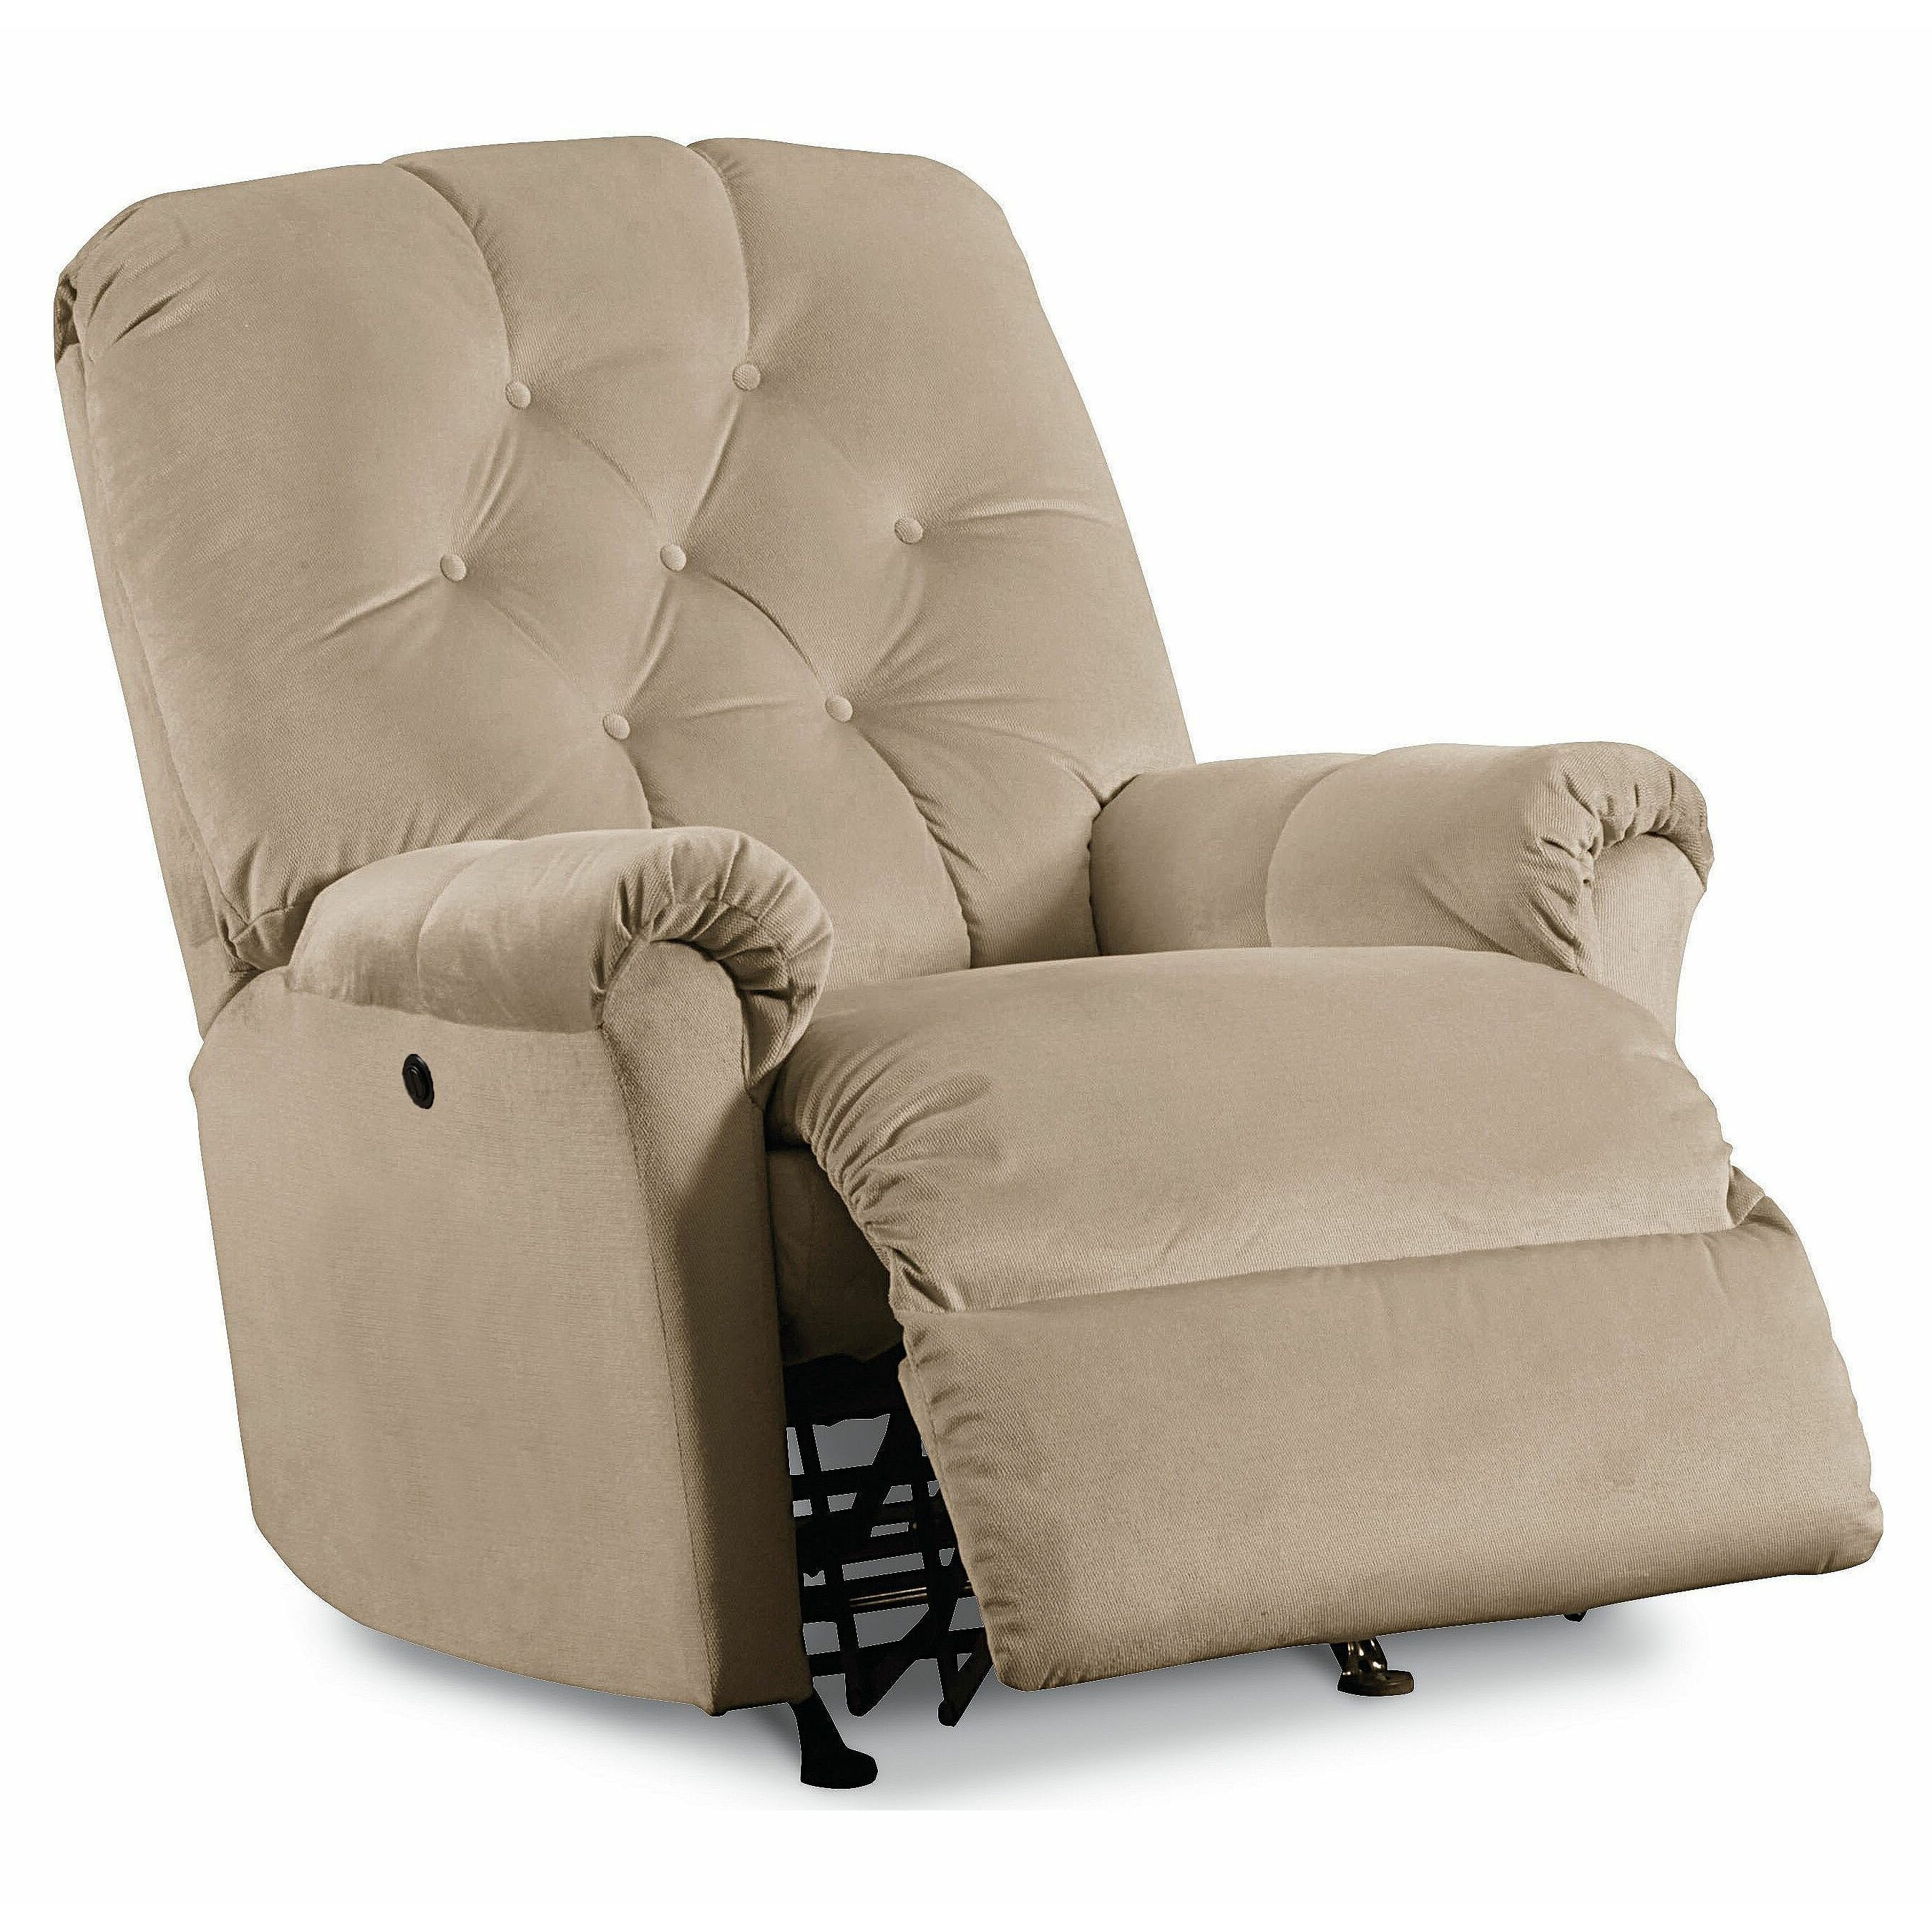 Lane furniture miles recliner wayfair for Lane furniture